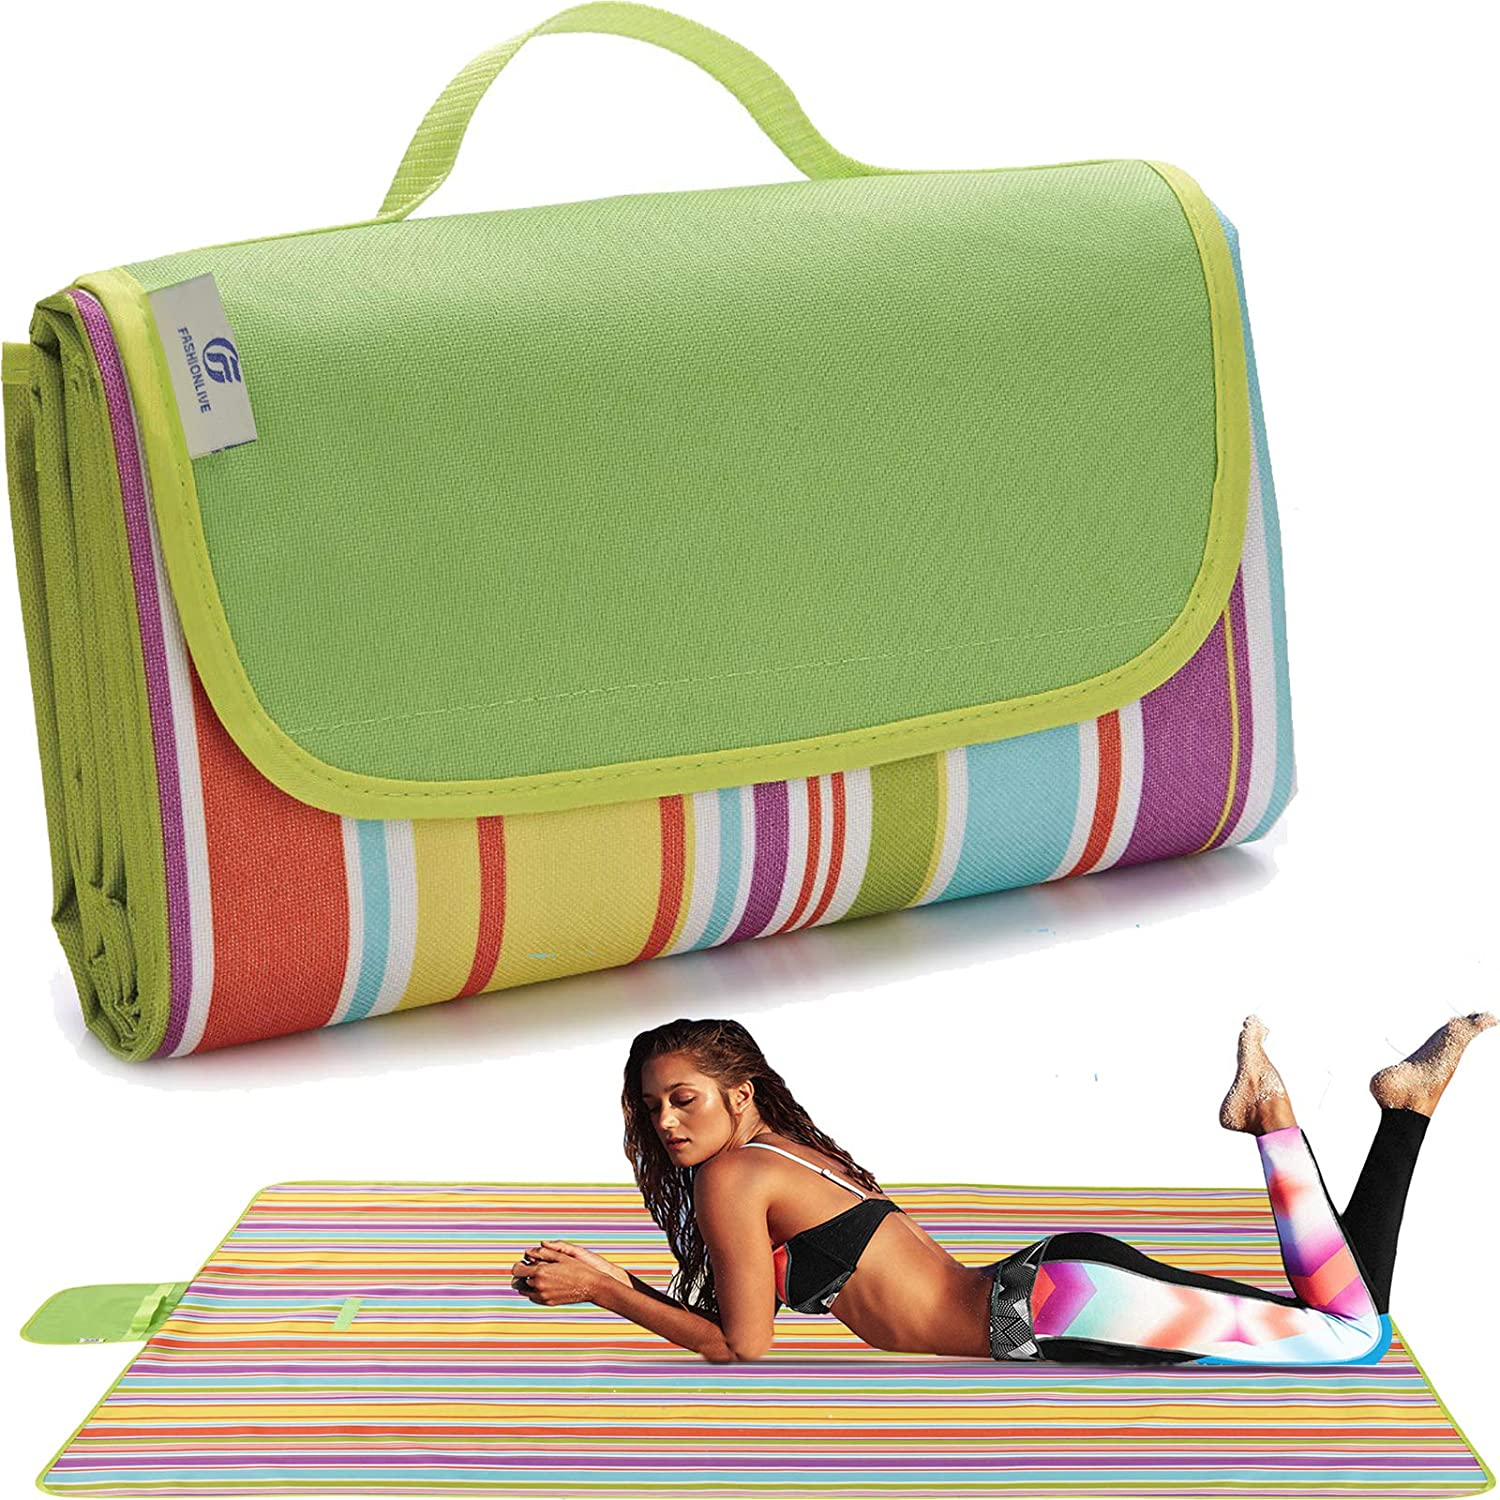 Fashionlive Picnic Blanket Extra Large Big Beach Blanket Outdoor Blanket Waterproof Sand Free Oversized Camping Mat Foldable Portable Handy Tote for Travel Sports Home Yoga Park Grass Picnic